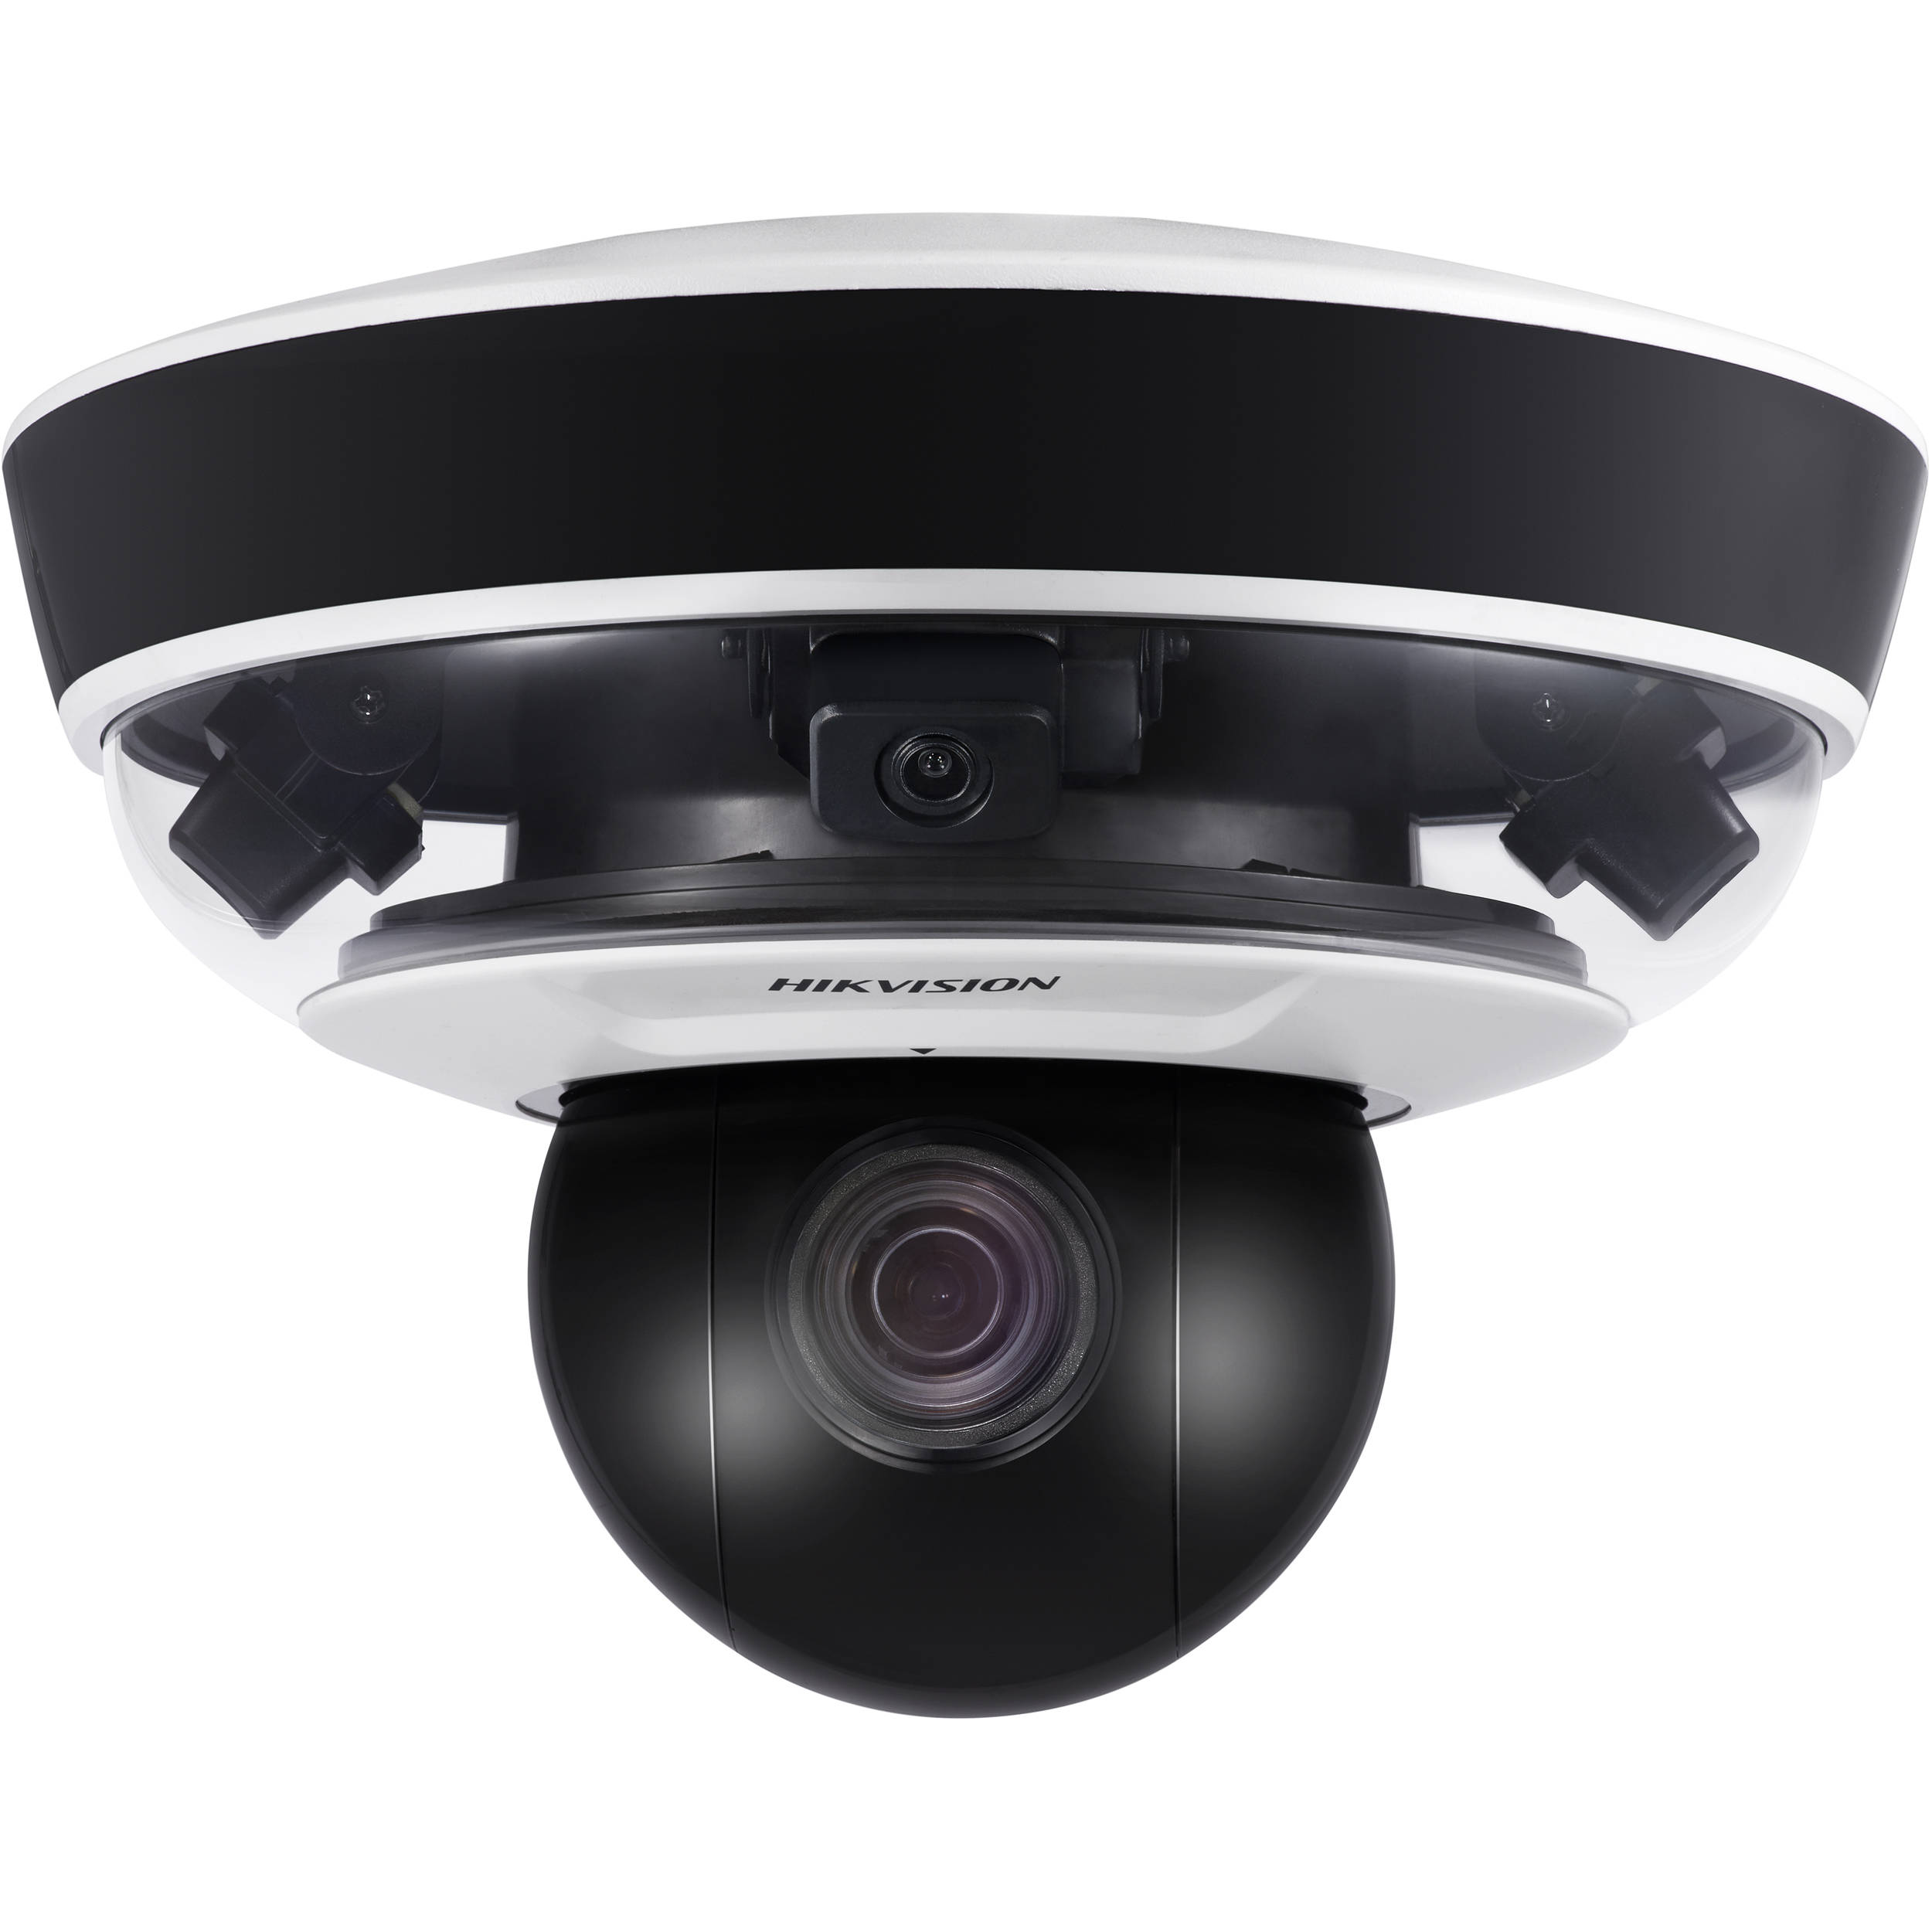 DS-2PT5326IZ-DE HIKVISION 8MP (4x 2MP), 5-50mm, 4mm, 30fps, 240 degrees, PanoVu Mini, Panoramic + PTZ, H.265, Day/Night, DWDR, Outdoor, MicroSD, Audio, PoE+, IP66, TVS 2000V